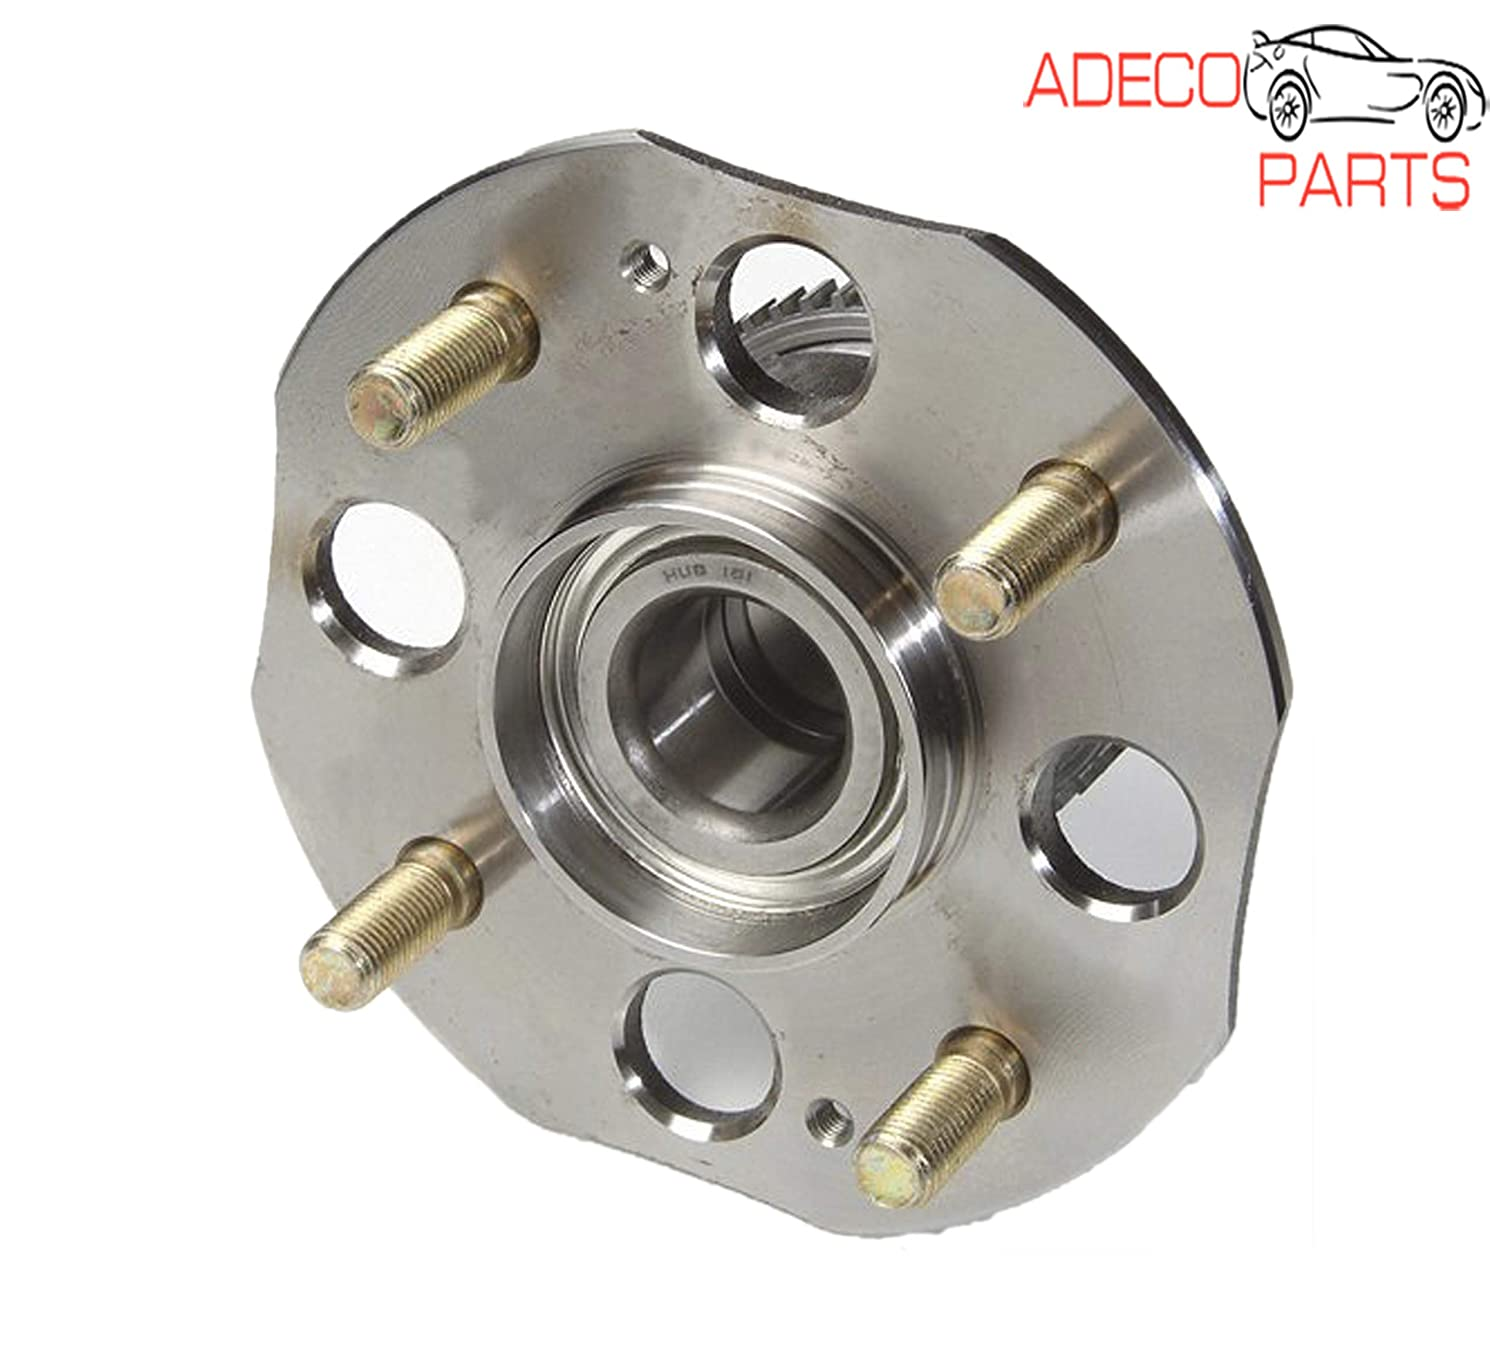 AdecoAutoParts/© 1 Rear Wheel Bearing /& Hub Assembly Replacement 512178 BR930276 for Honda Accord 1998 1999 2000 2001 2002 2.3L L4